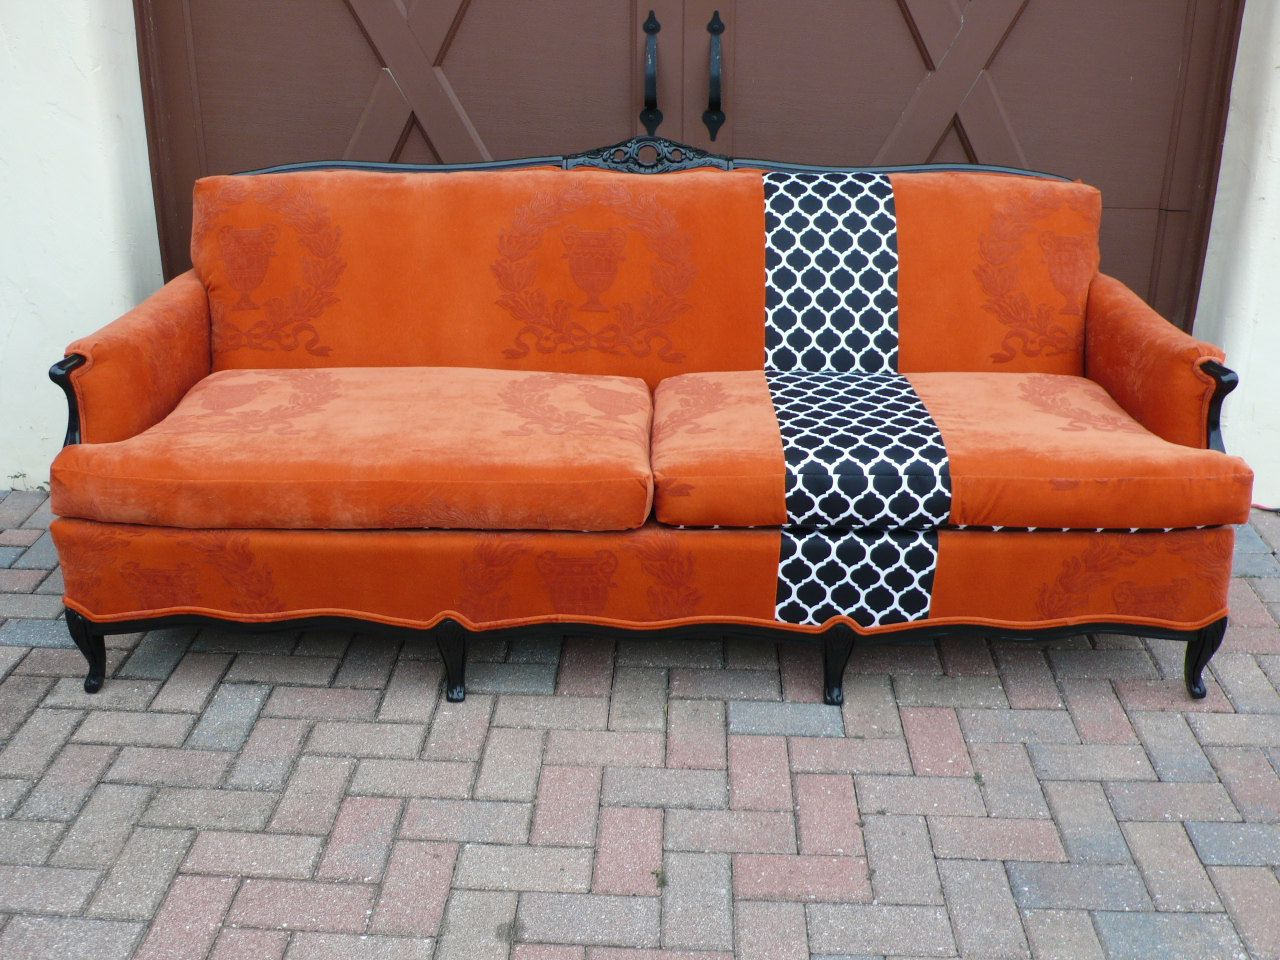 Orange French Provincial Couch Sofa With Black And White Stripe